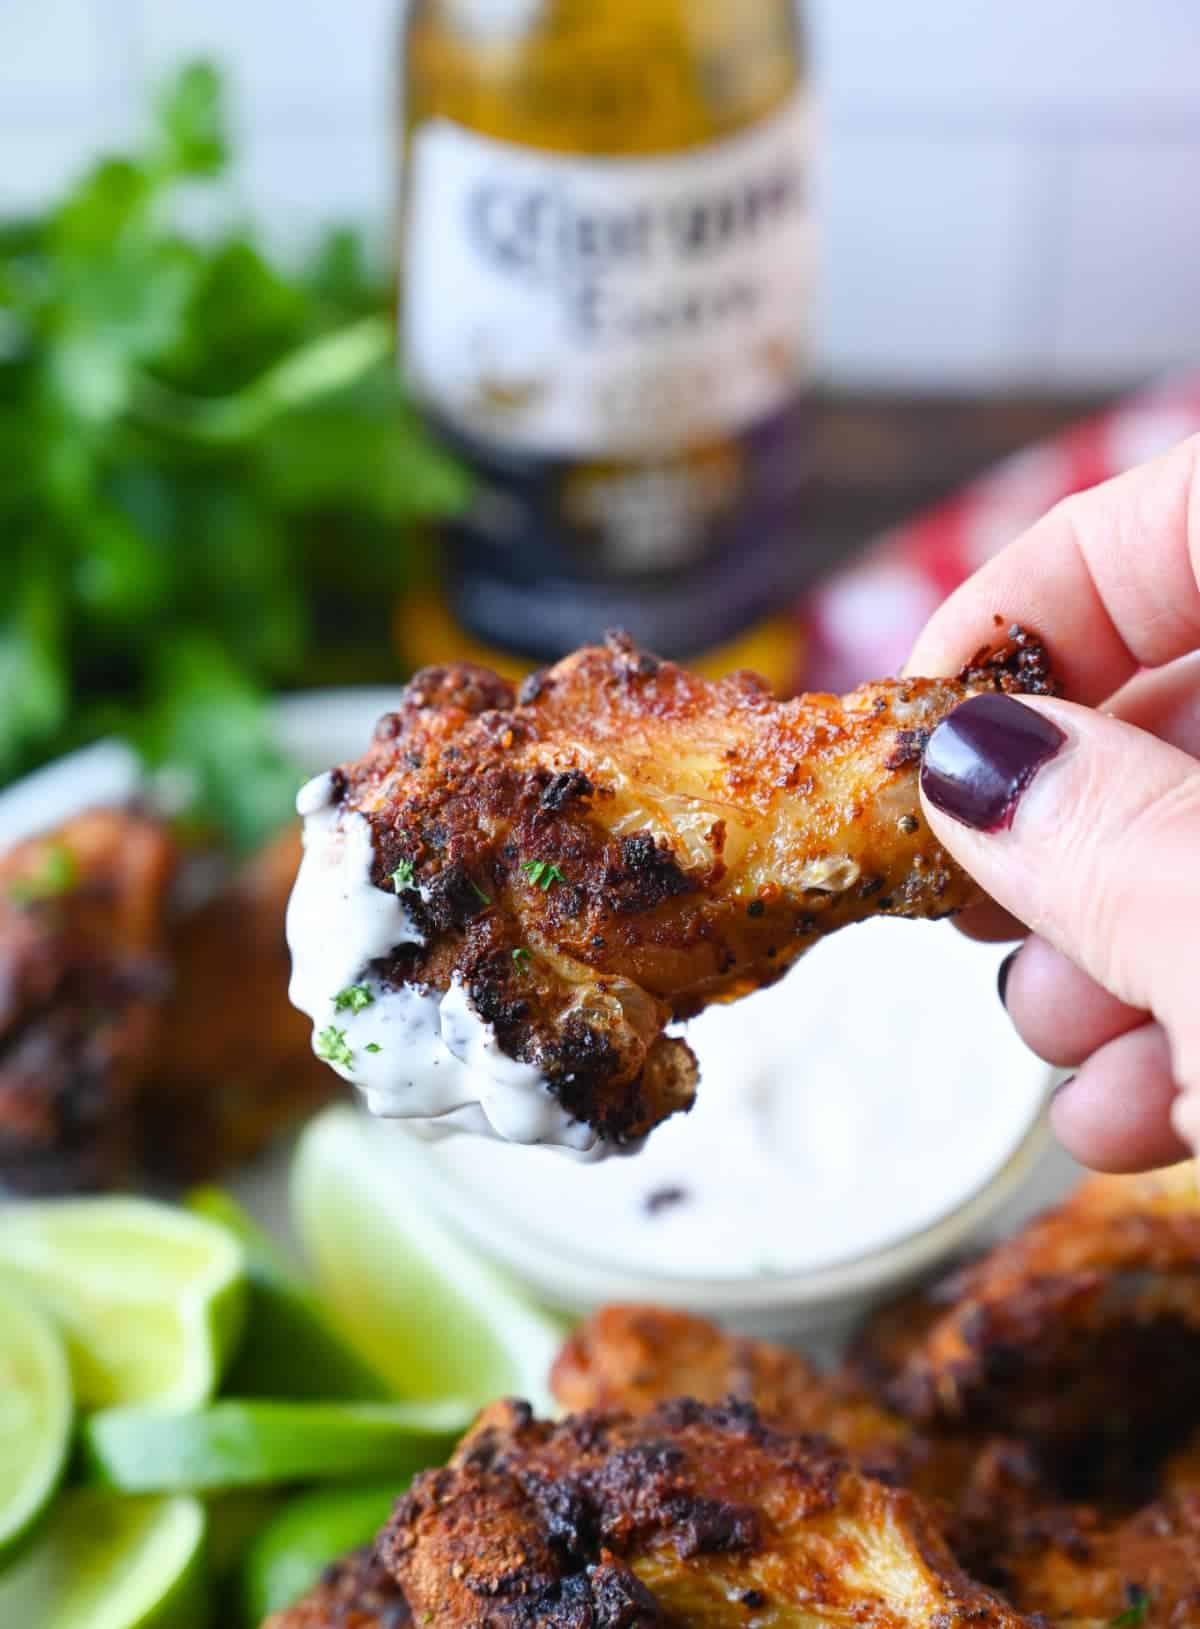 A chicken wing being picked up and that has been dipped in ranch dressing.